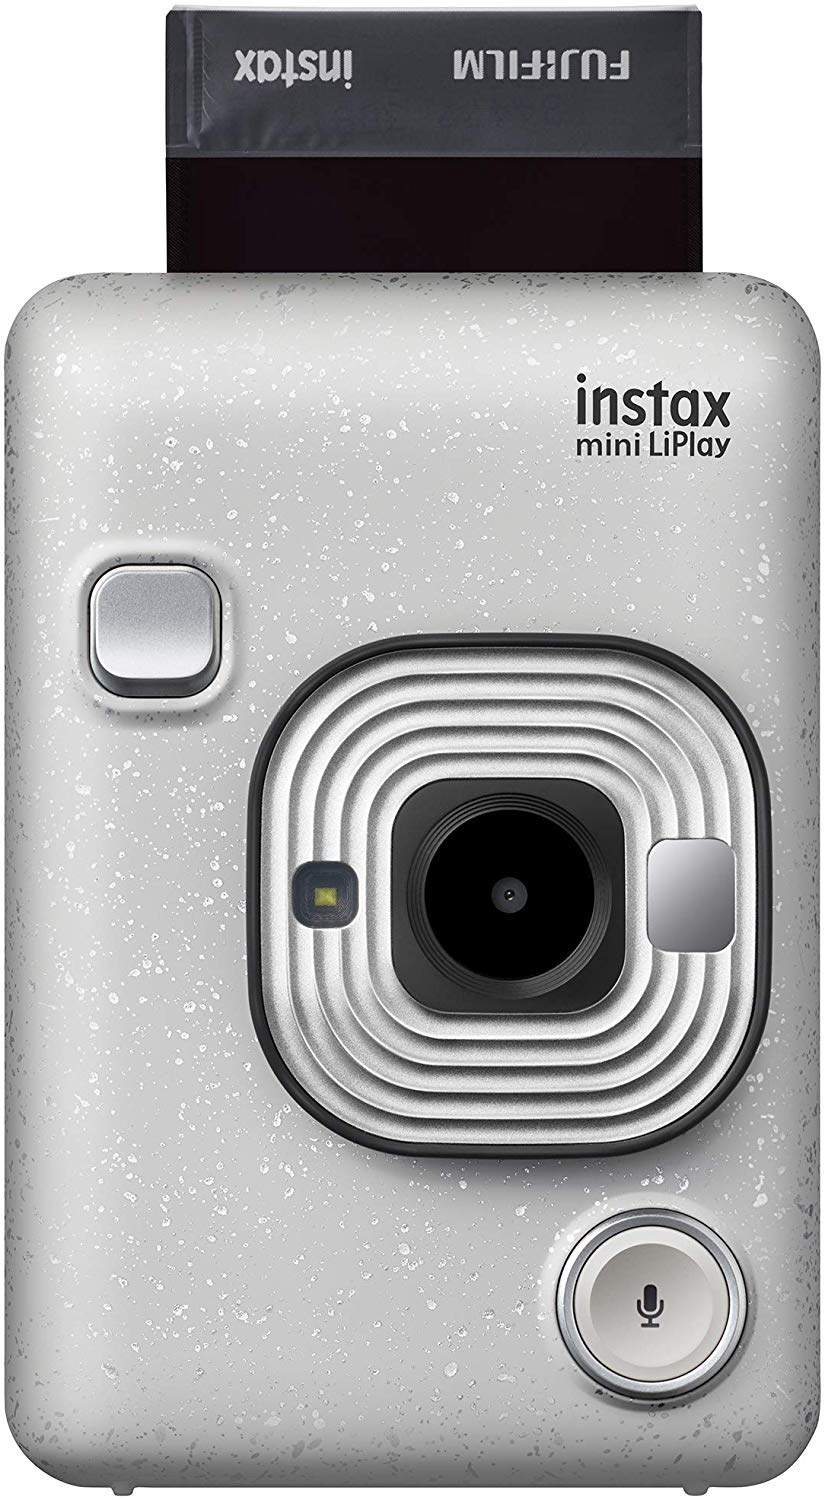 Cool holiday tech gifts for teens: Instax Hybrid camera